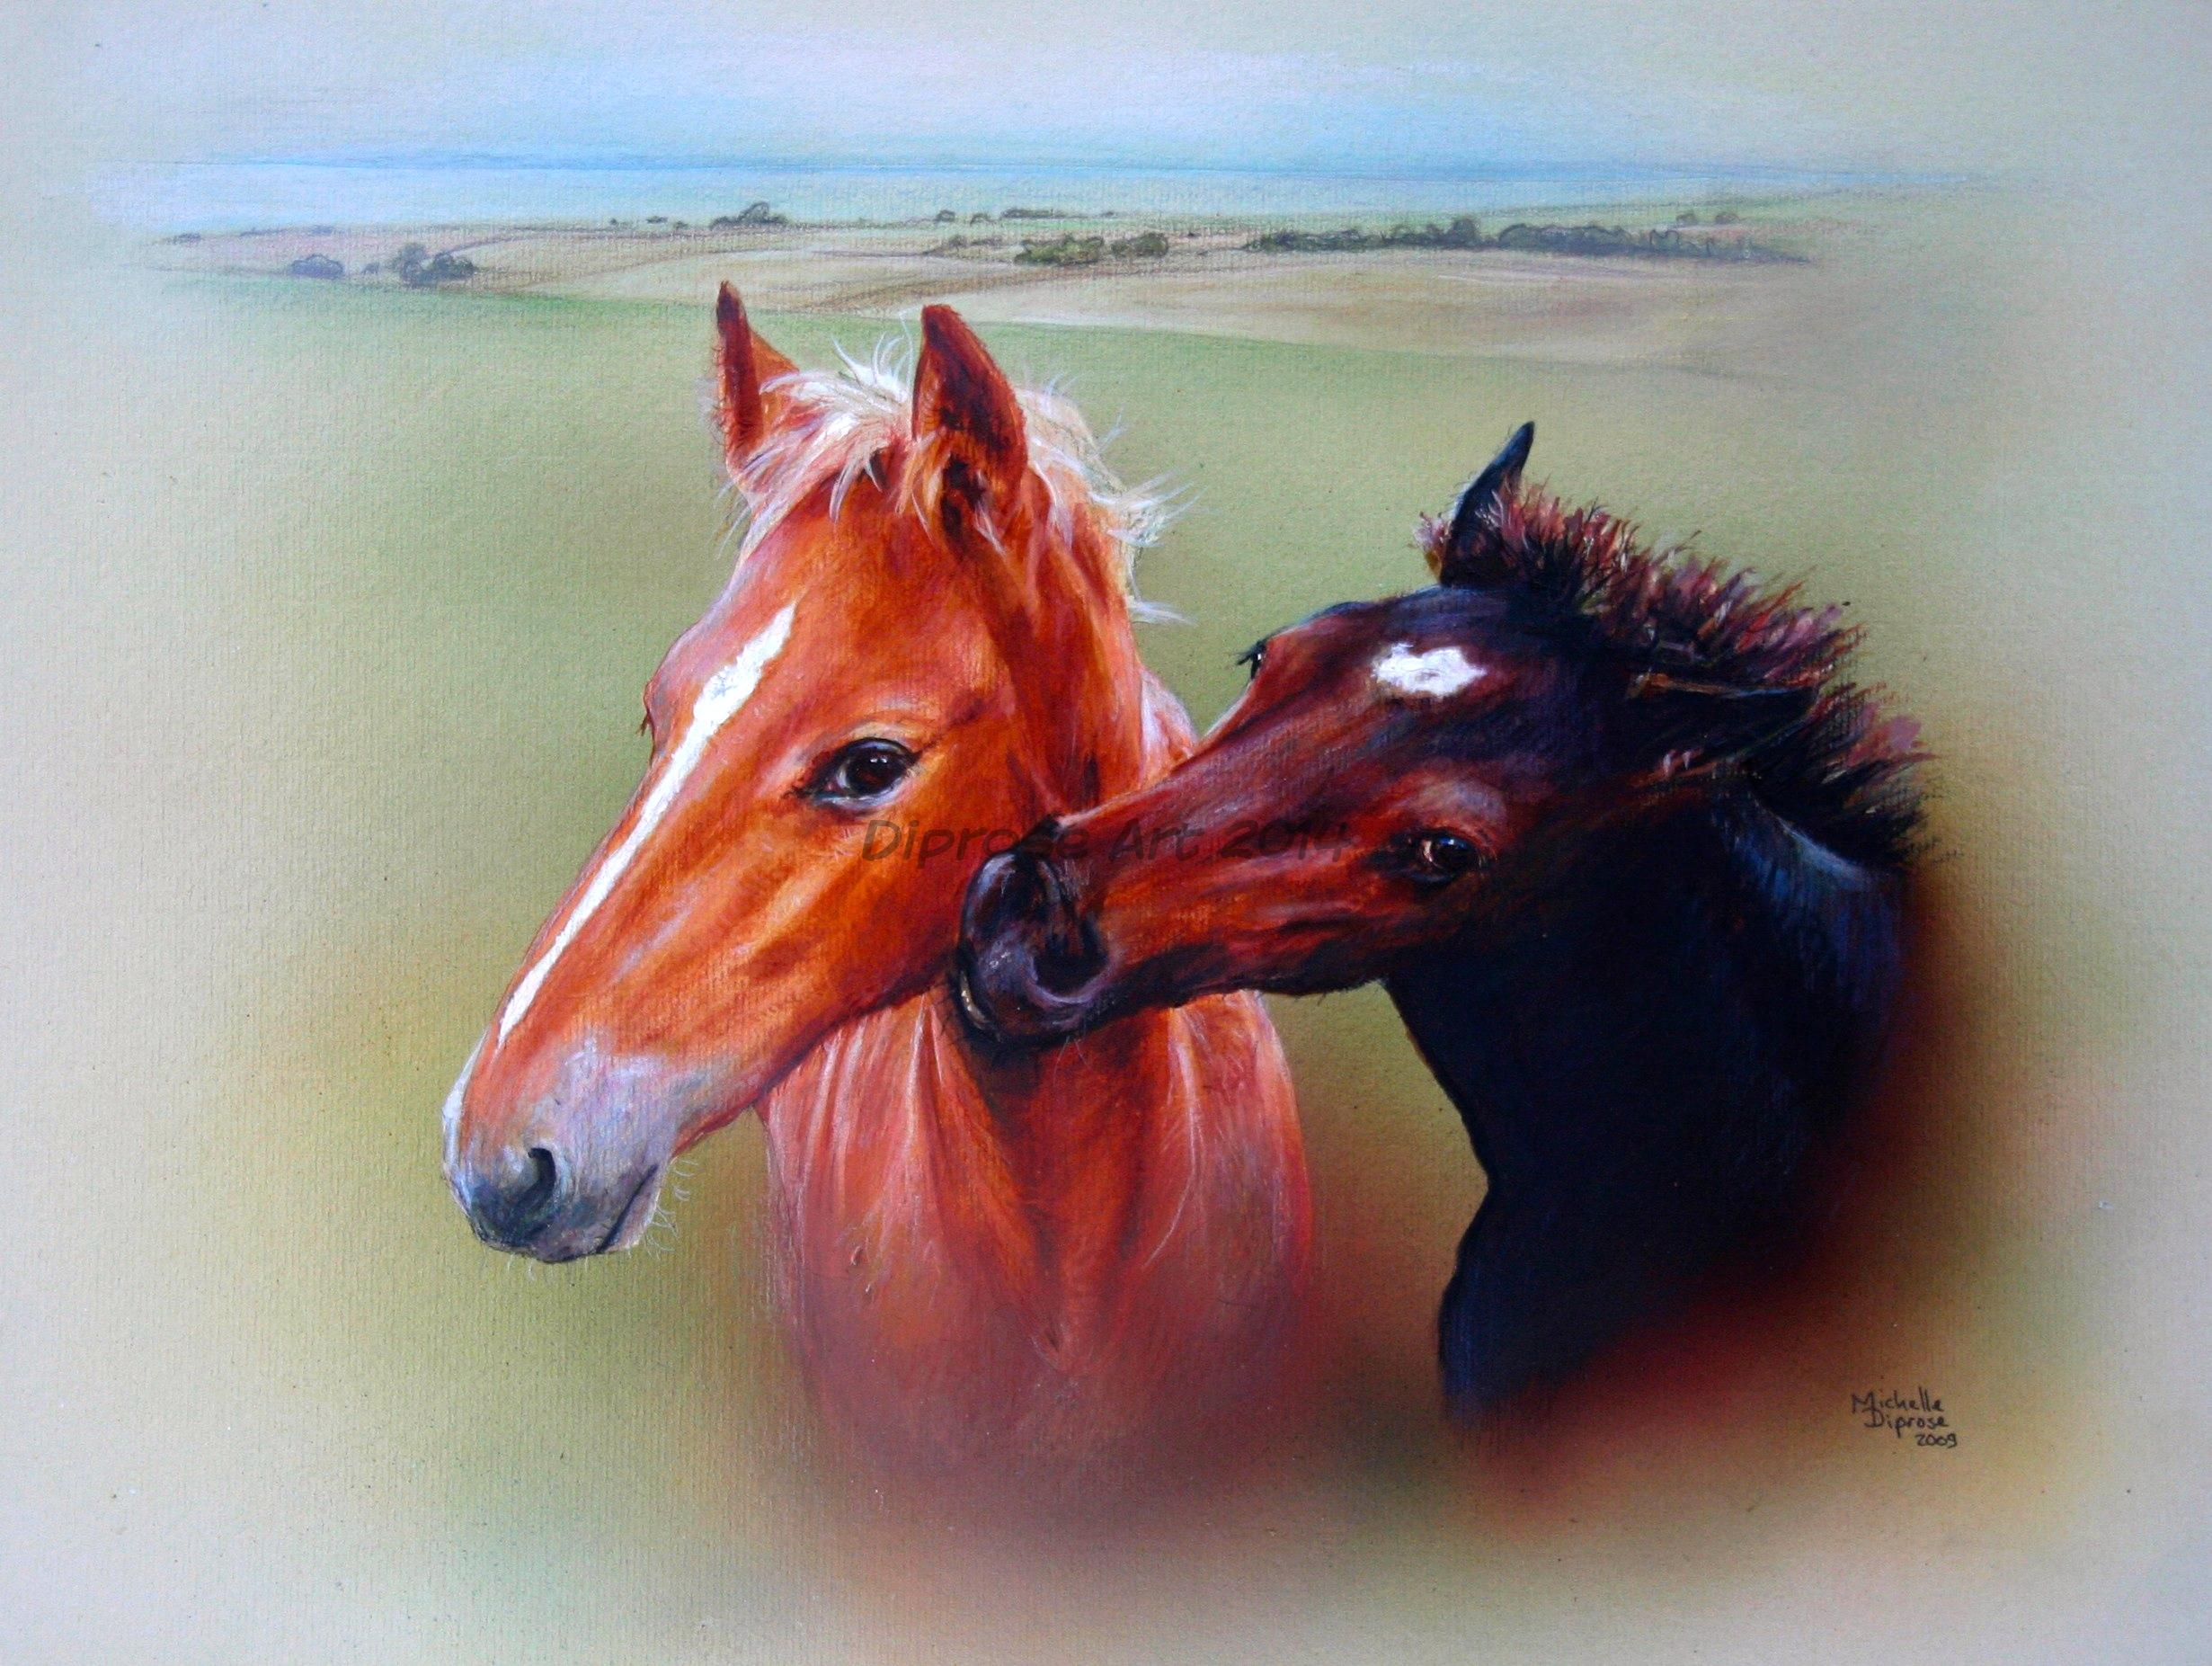 Acrylics on board - approx A3 - horse portraits - I was really pleased when I was asked to paint these foals as I usually am asked to paint grown-ups!  They looked so naughty and cheeky, adorable.